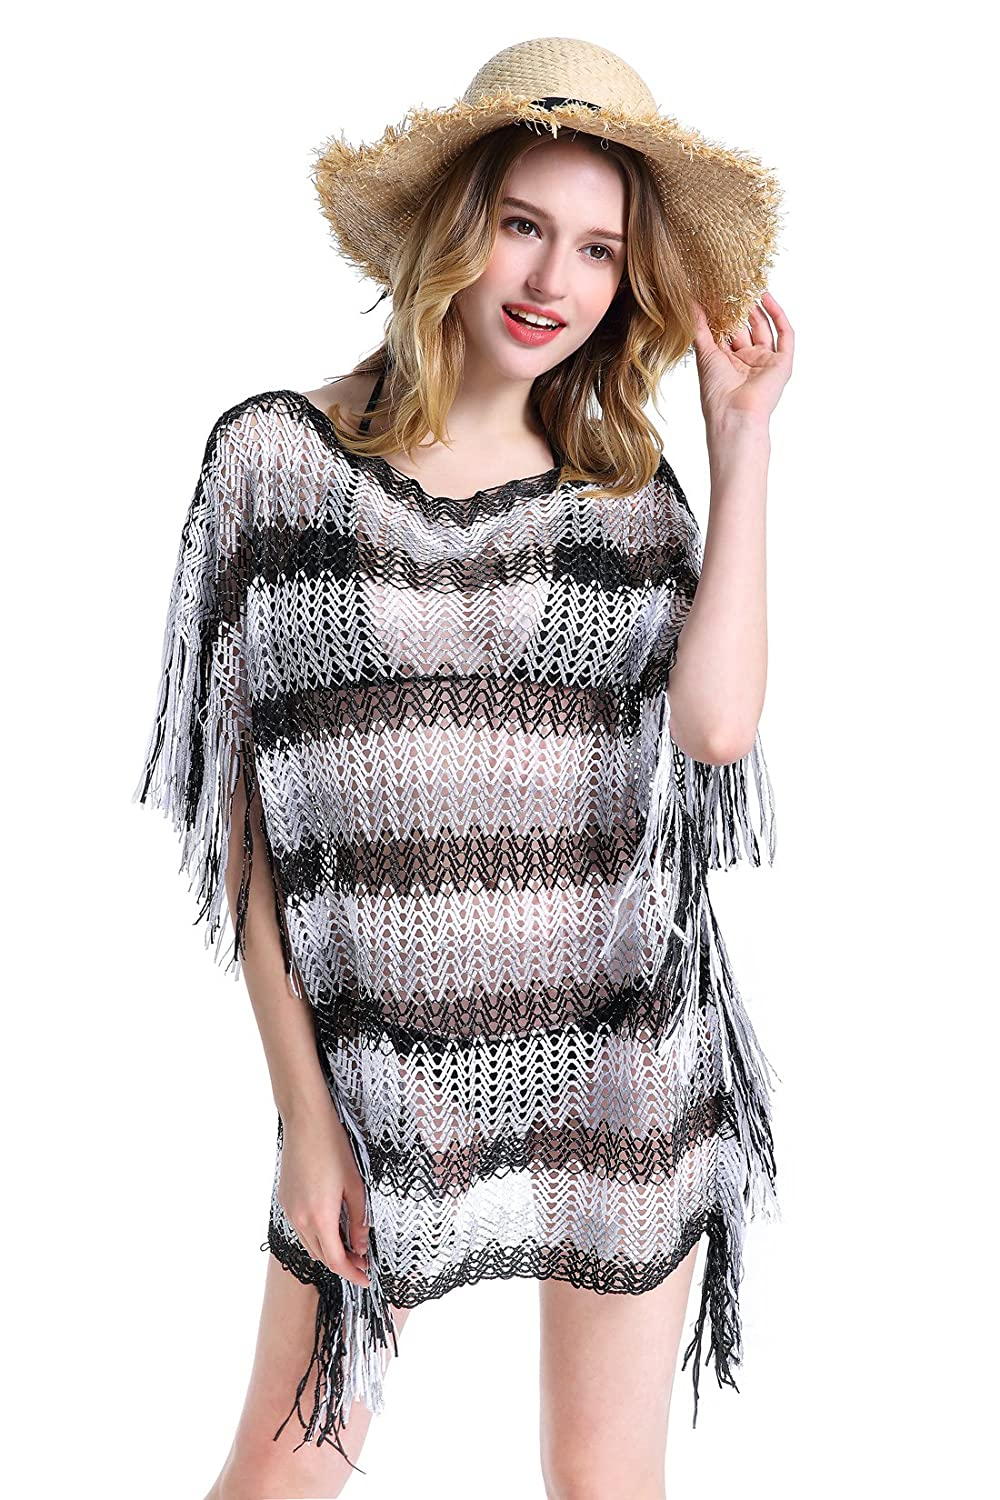 5ae507b61f Beach Cover up: fashionable stripes design£» mesh cover up let your whole  body look Looming and protect your skin against the sun to help keep you  cool and ...